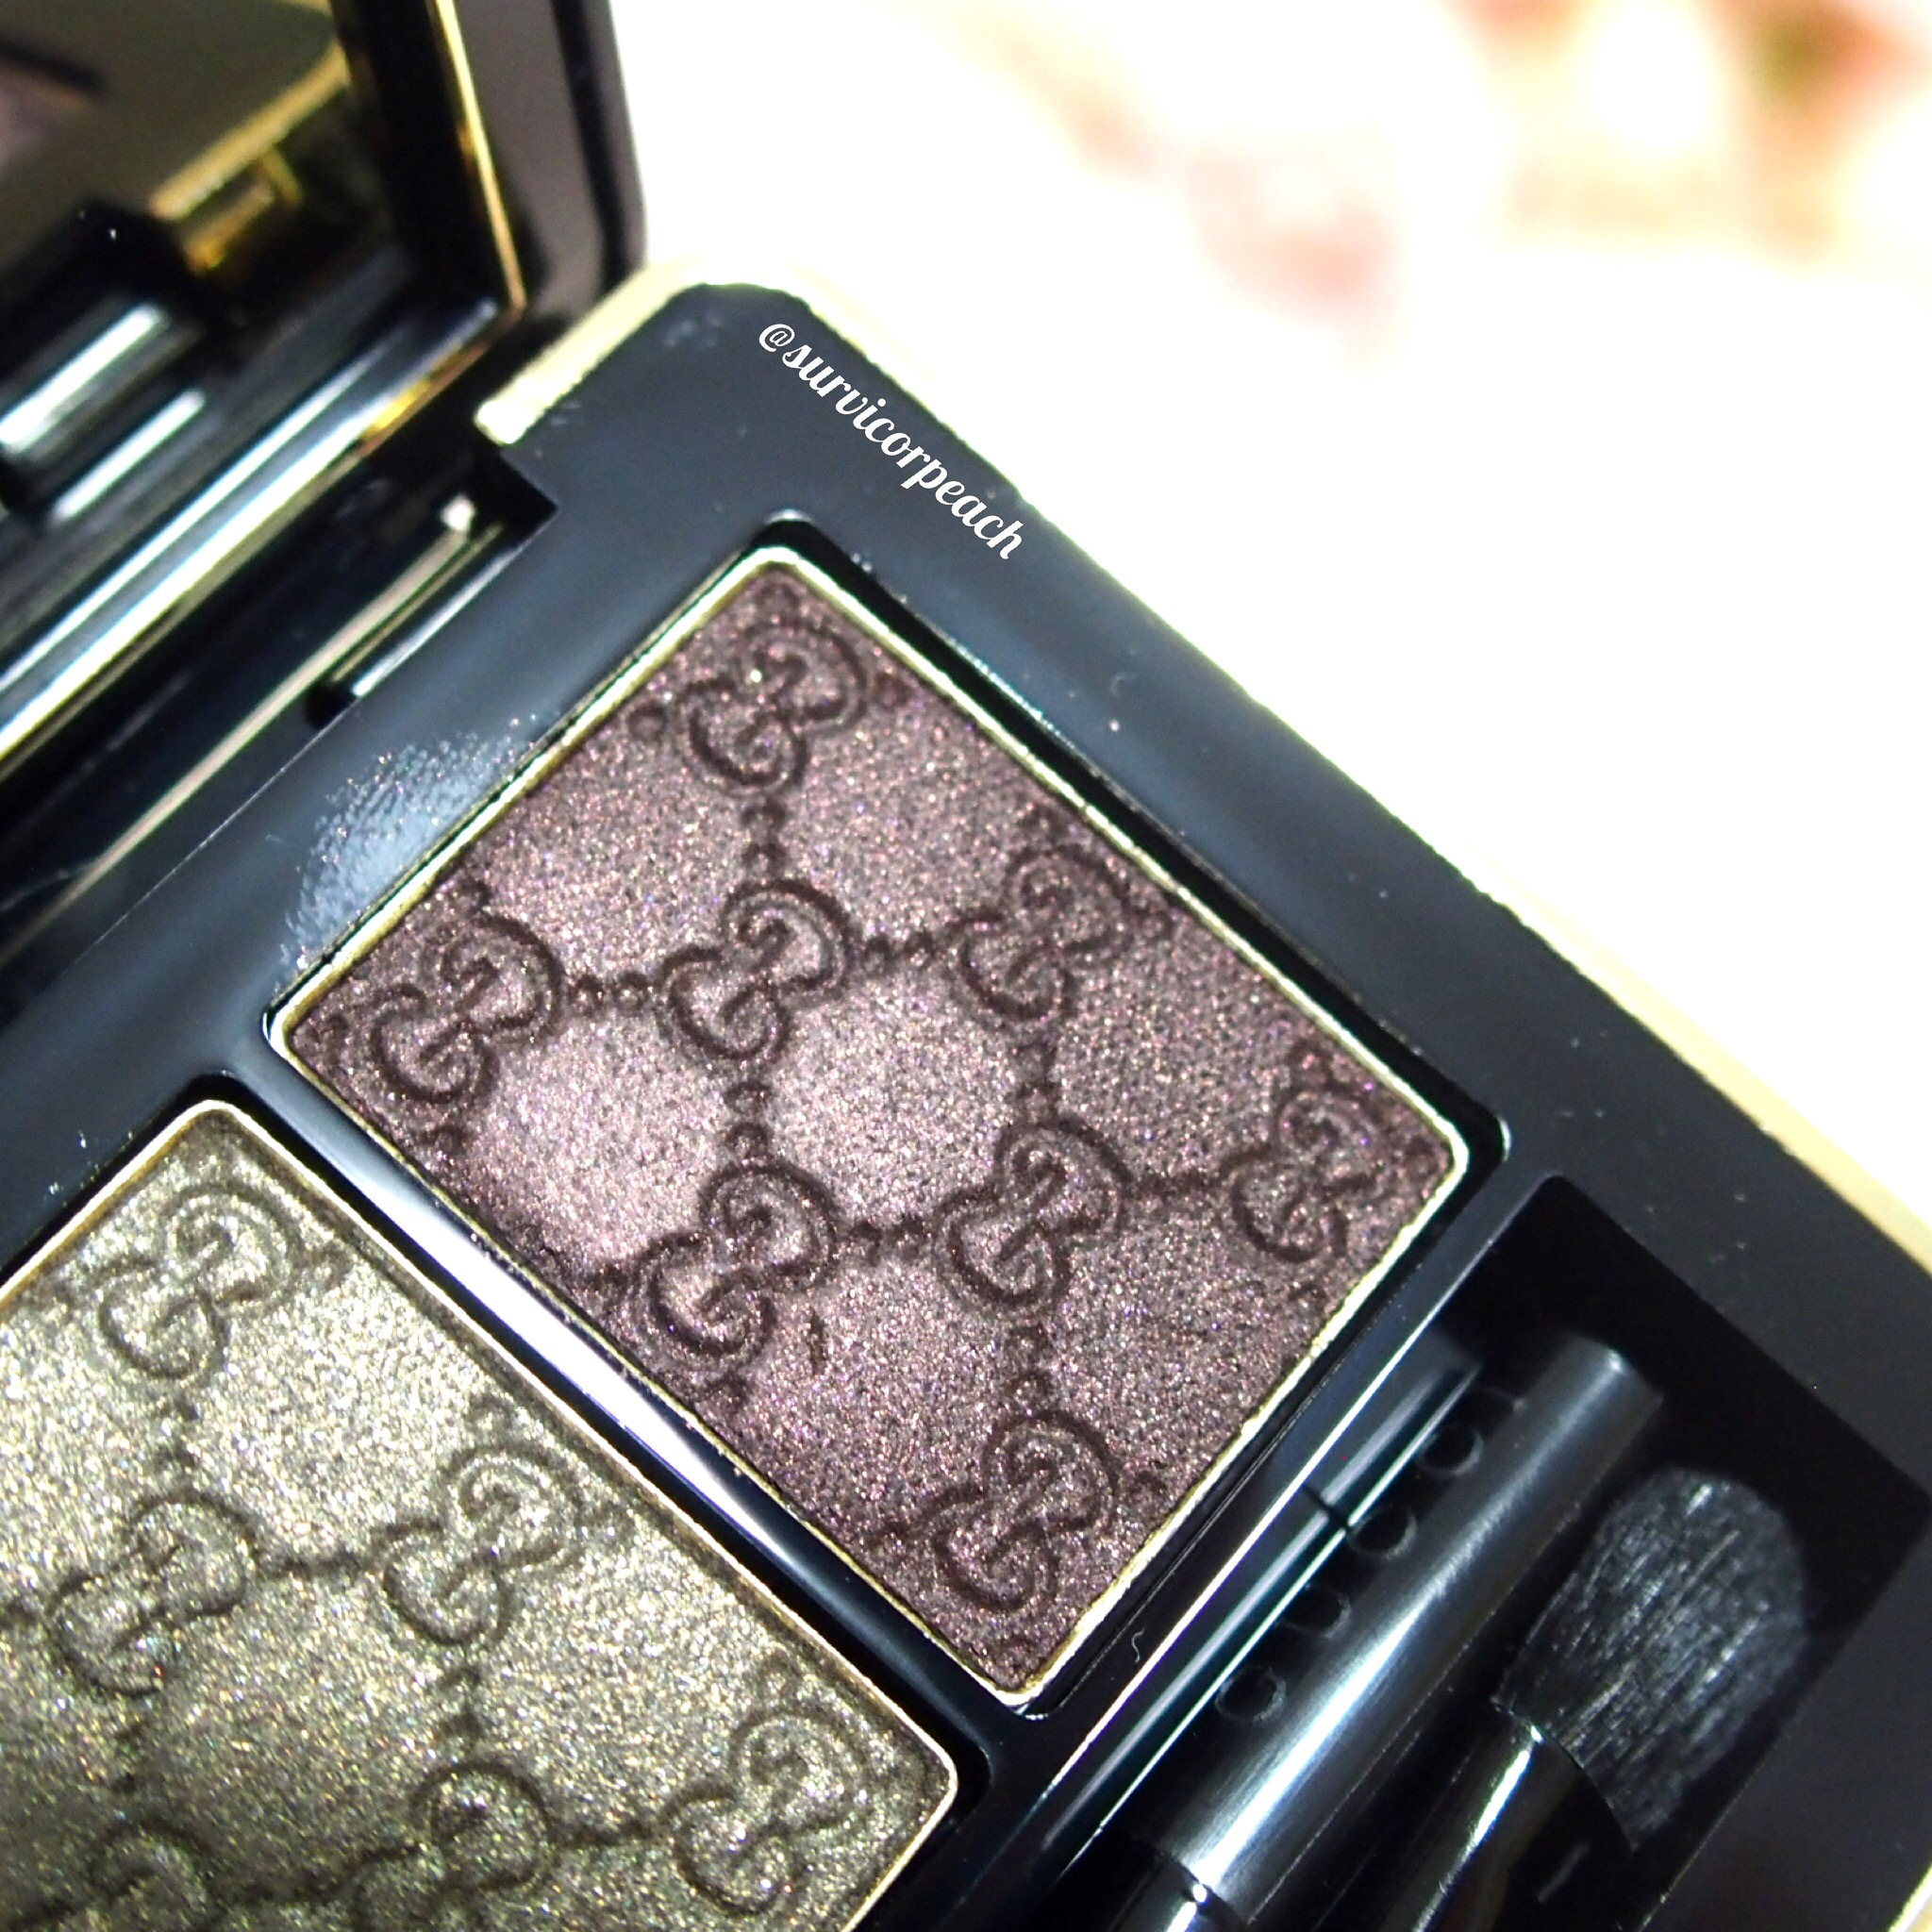 Gucci Fume Magnetic Color Shadow Duo - right (in artificial light)